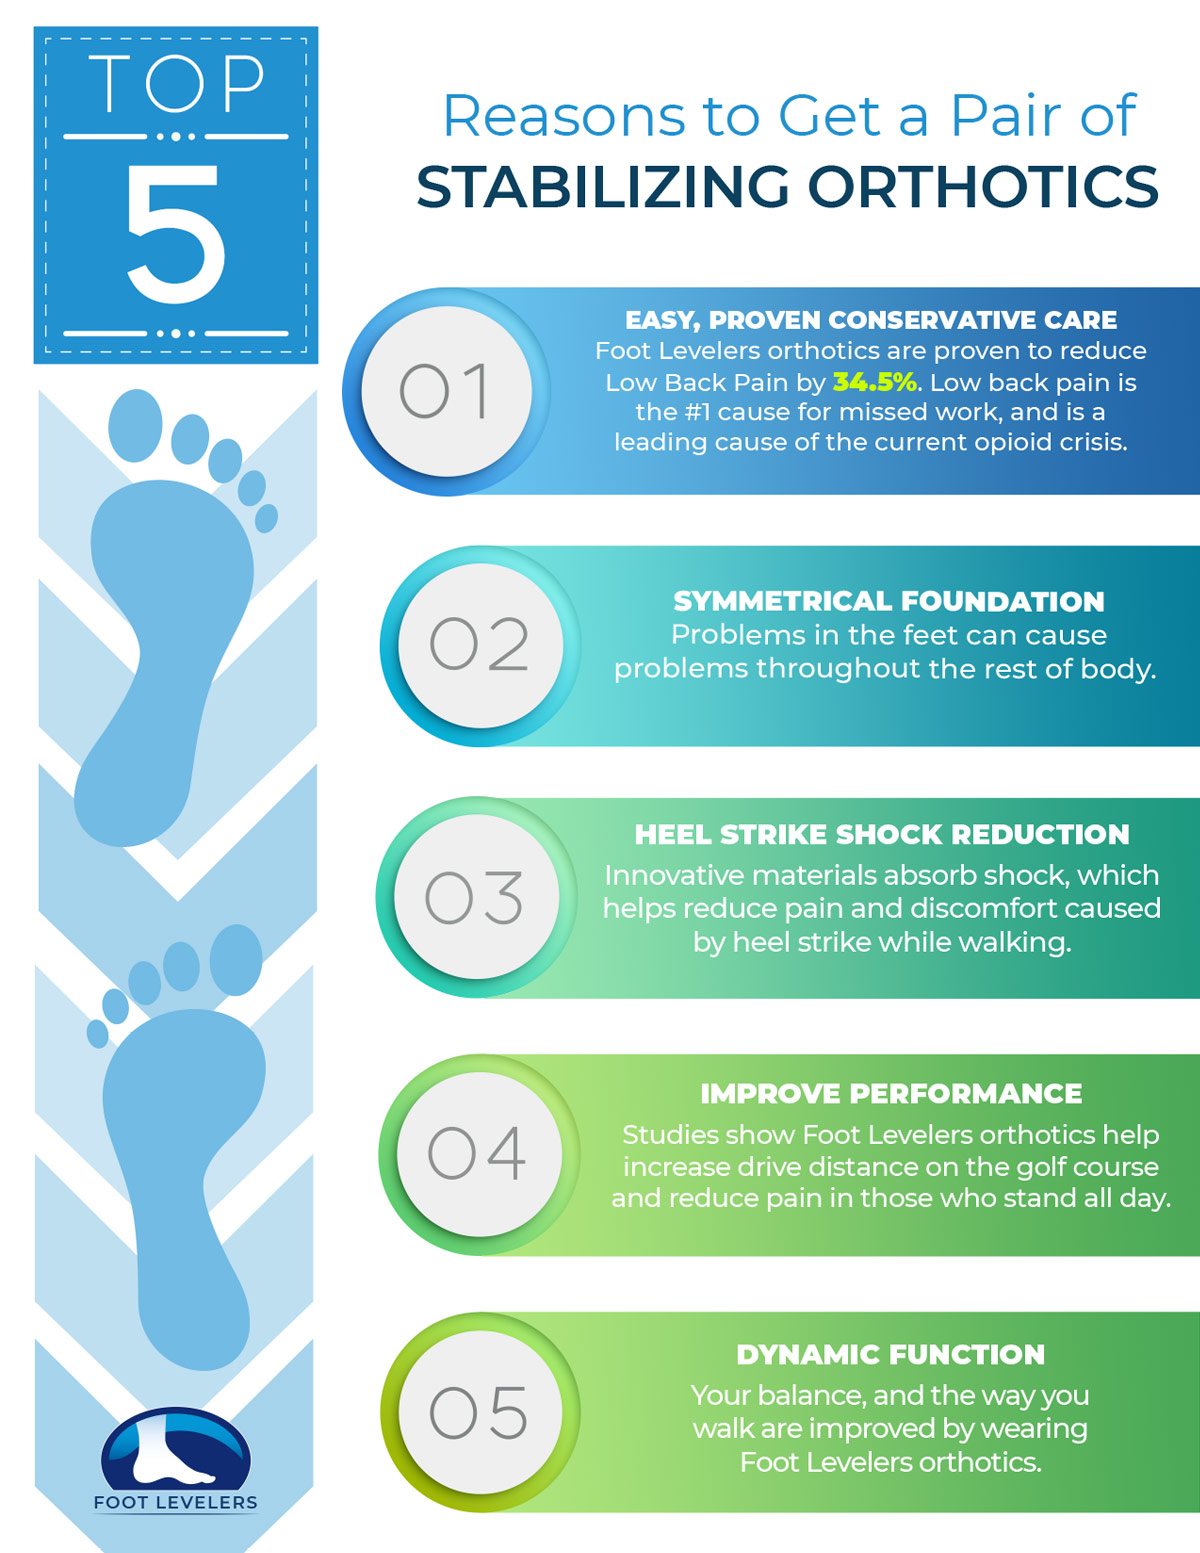 Top 5 Reasons for Stabilizing Orthotics